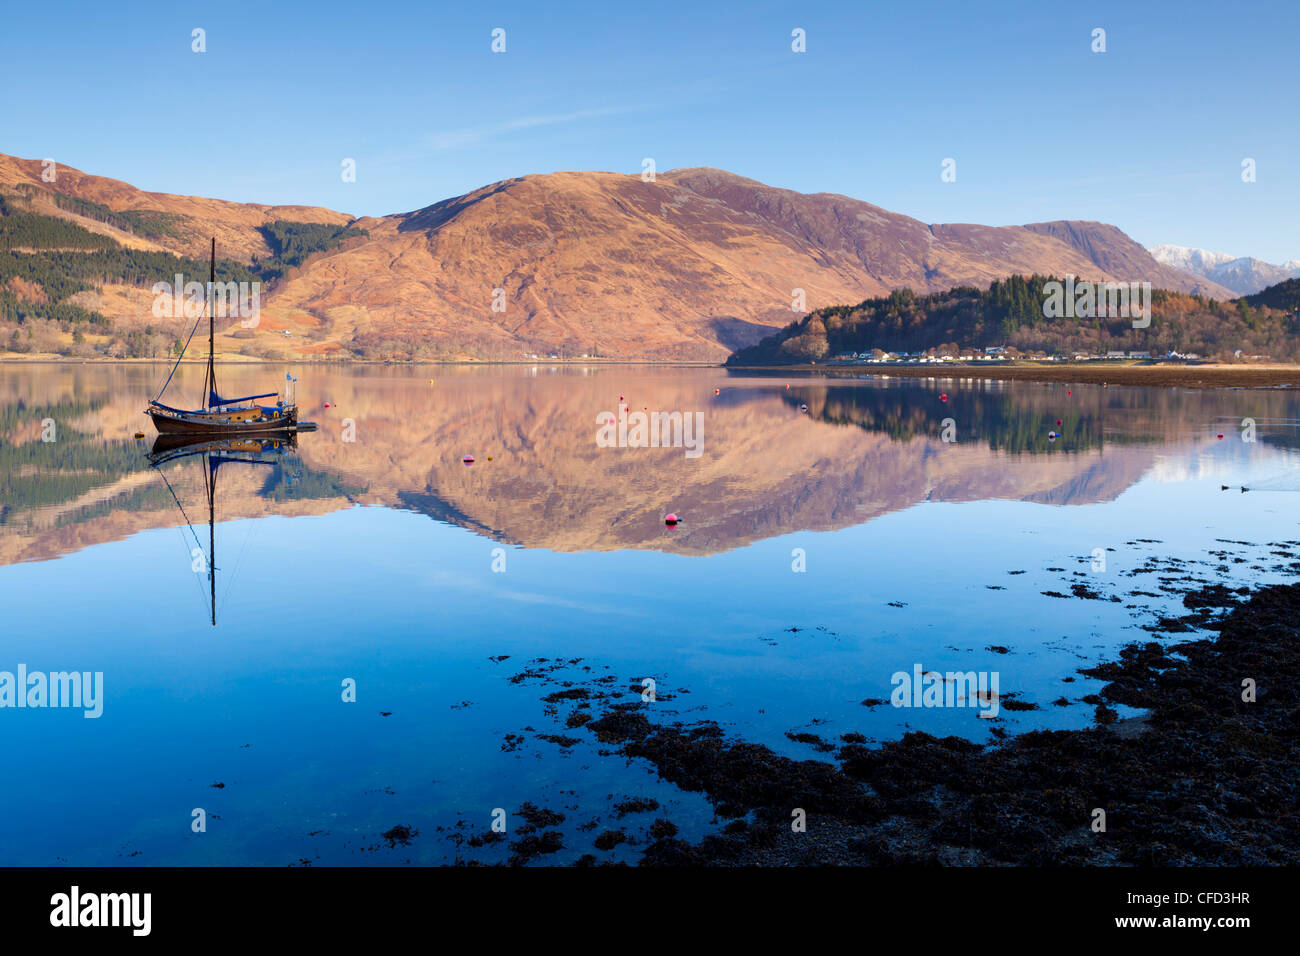 Picturesque tranquil Loch Leven with sailing boat and reflection from Glen Coe village, Highlands, Scotland, United - Stock Image